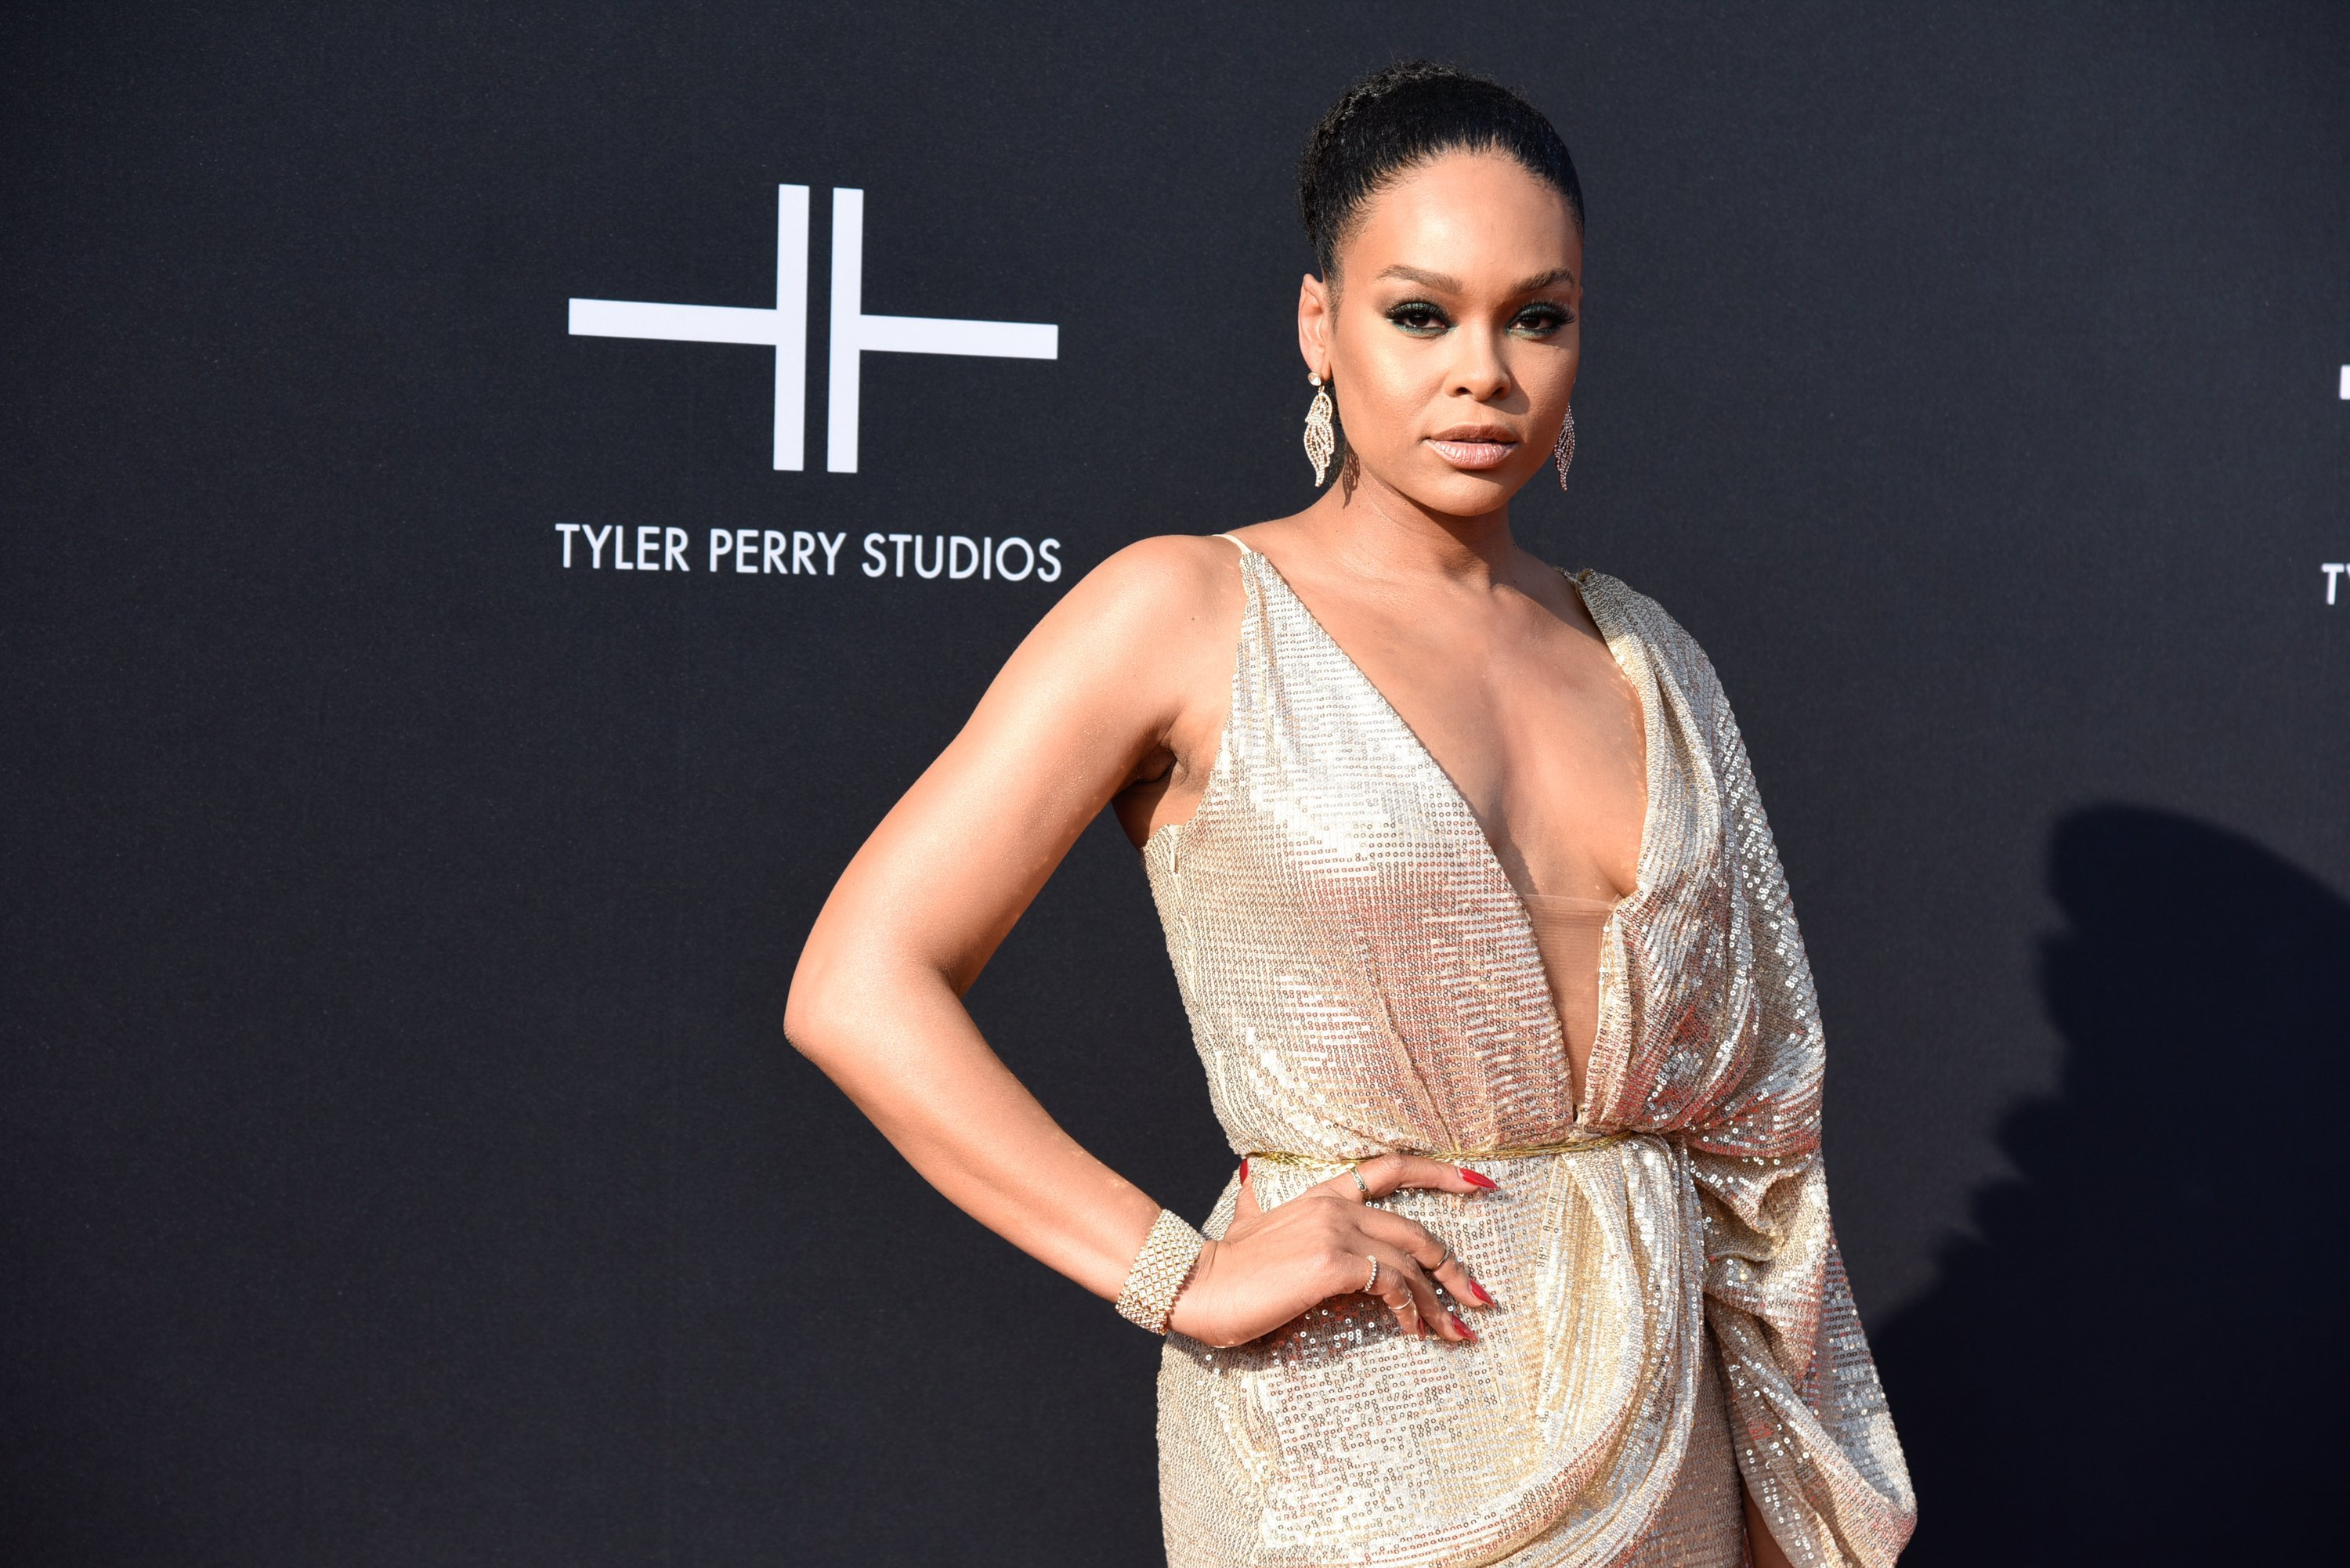 Demetria McKinney attends the opening of Tyler Perry Studios in Atlanta, Georgia on October 5, 2019 | Photo: Getty Images